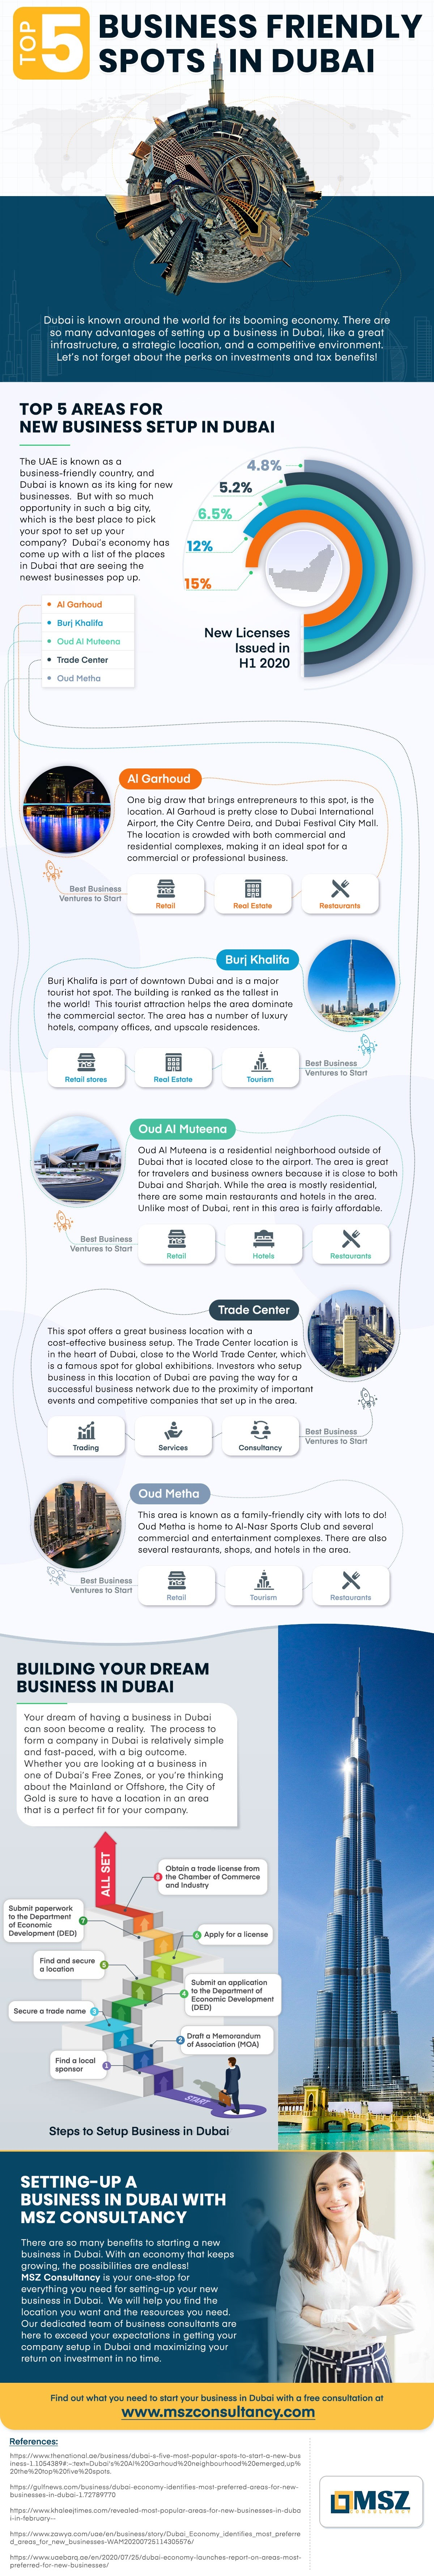 top-5-business-friendly-spots-in-dubai-infographic